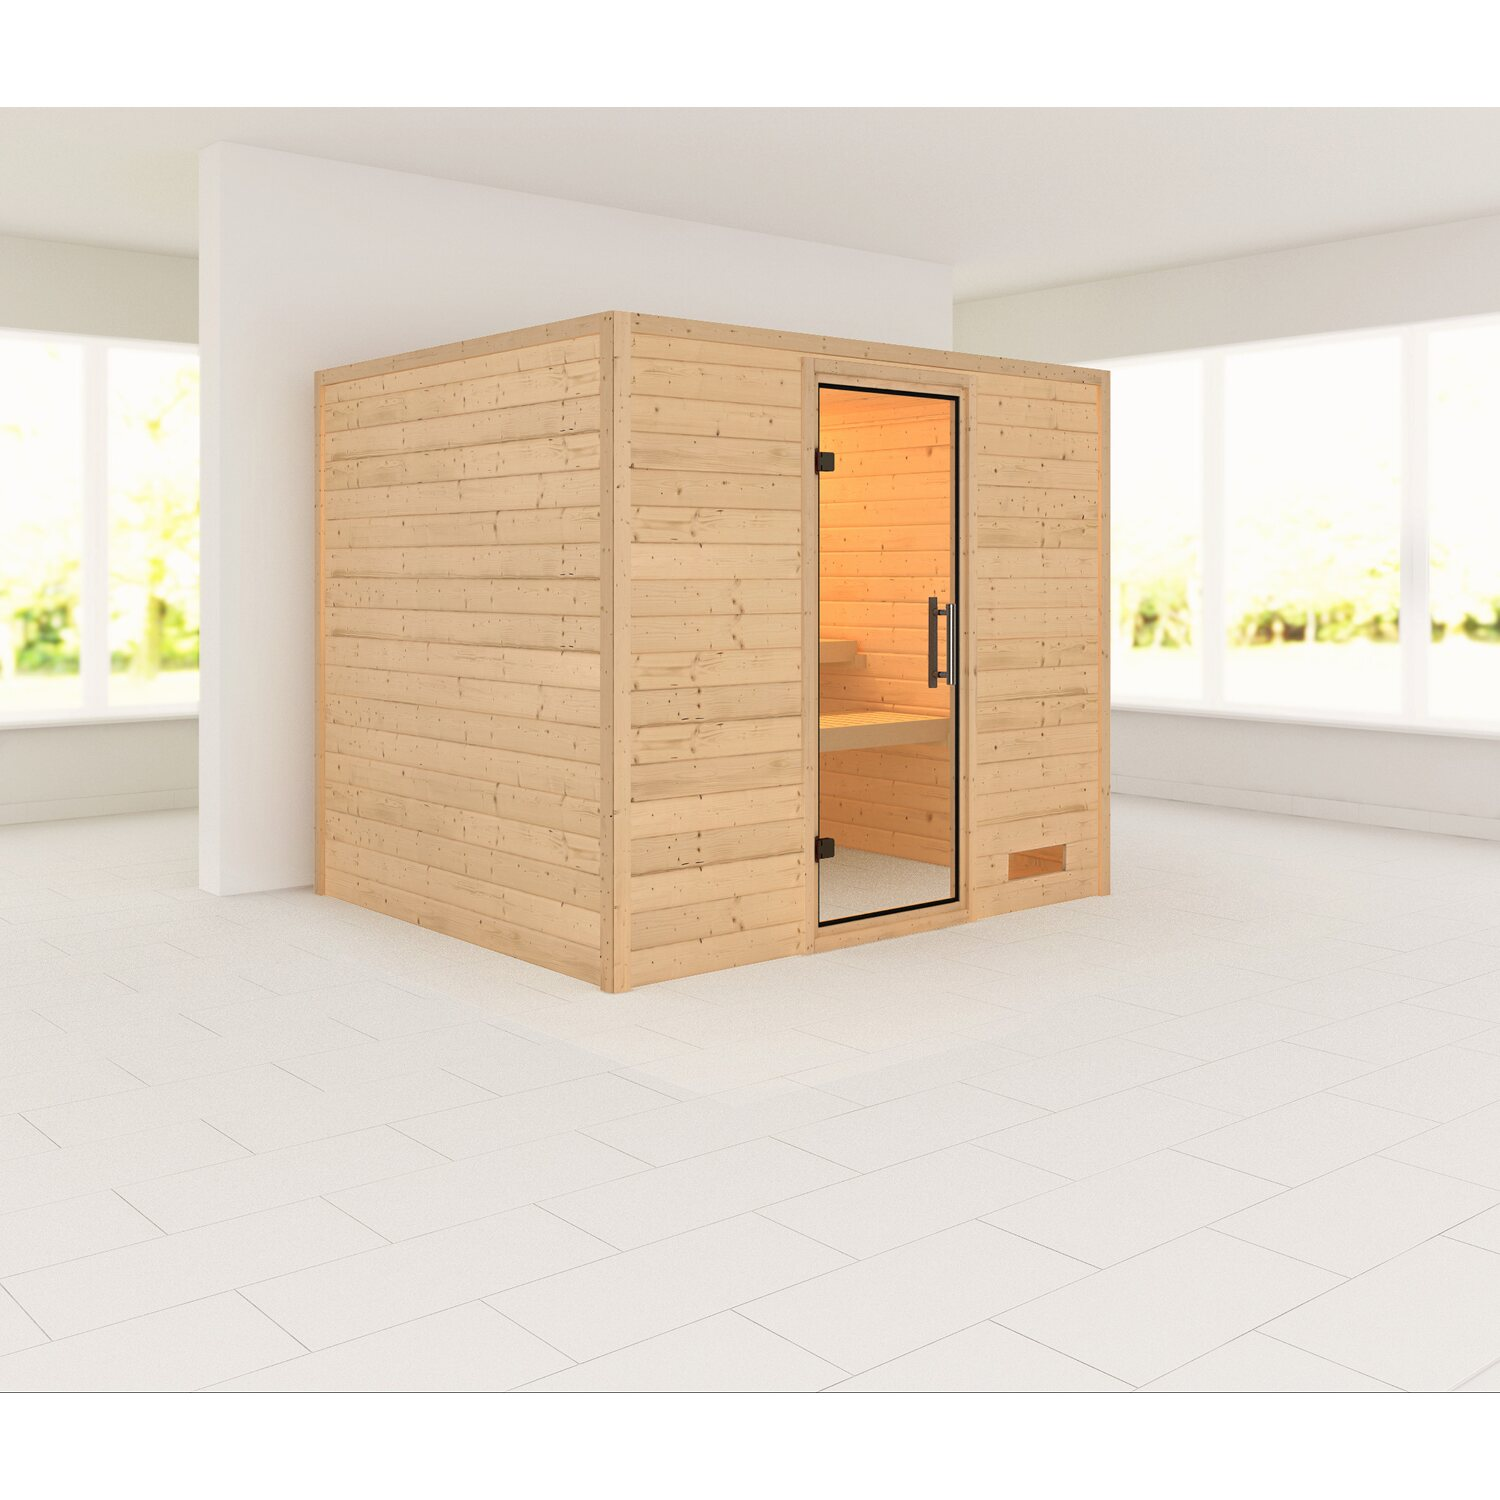 karibu sauna karla mit fronteinstieg glast r klar kaufen bei obi. Black Bedroom Furniture Sets. Home Design Ideas